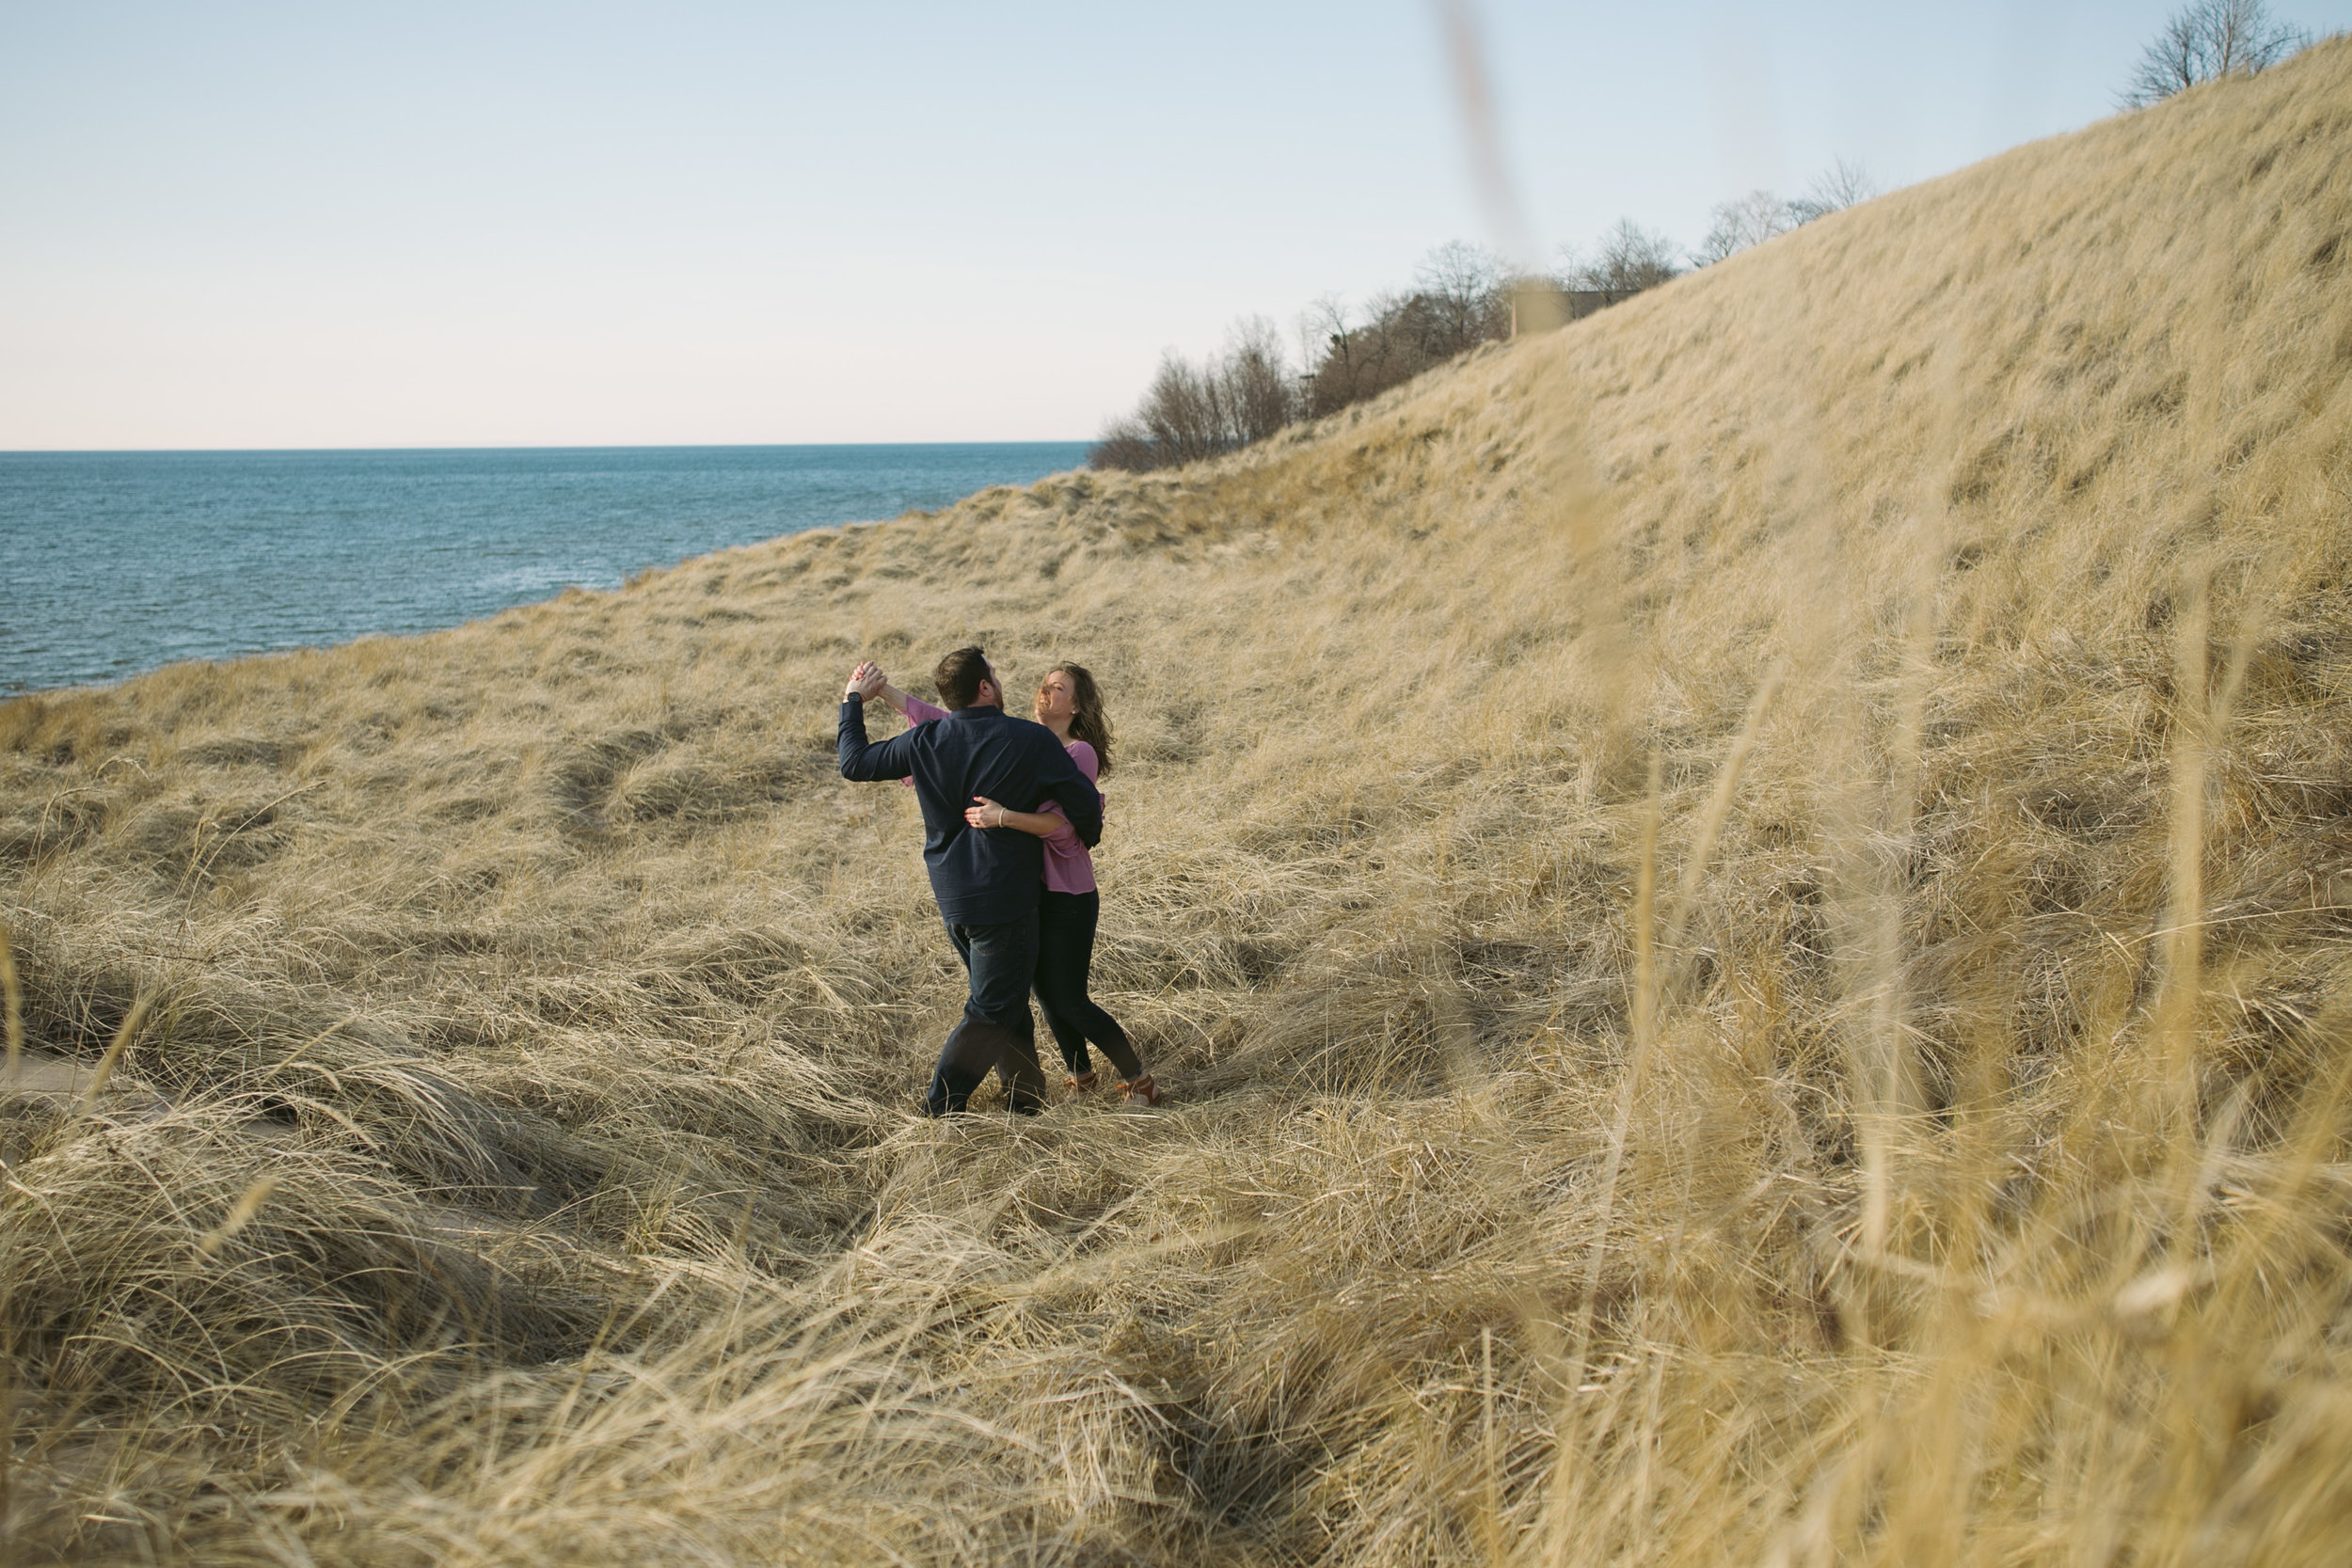 grandrapidsphotographer_hollandmichigan_hollandphotographer_lakemichigan_beachwedding_grandrapids_engaged_jessicadarling_jdarlingphoto_beachengagement013.jpg